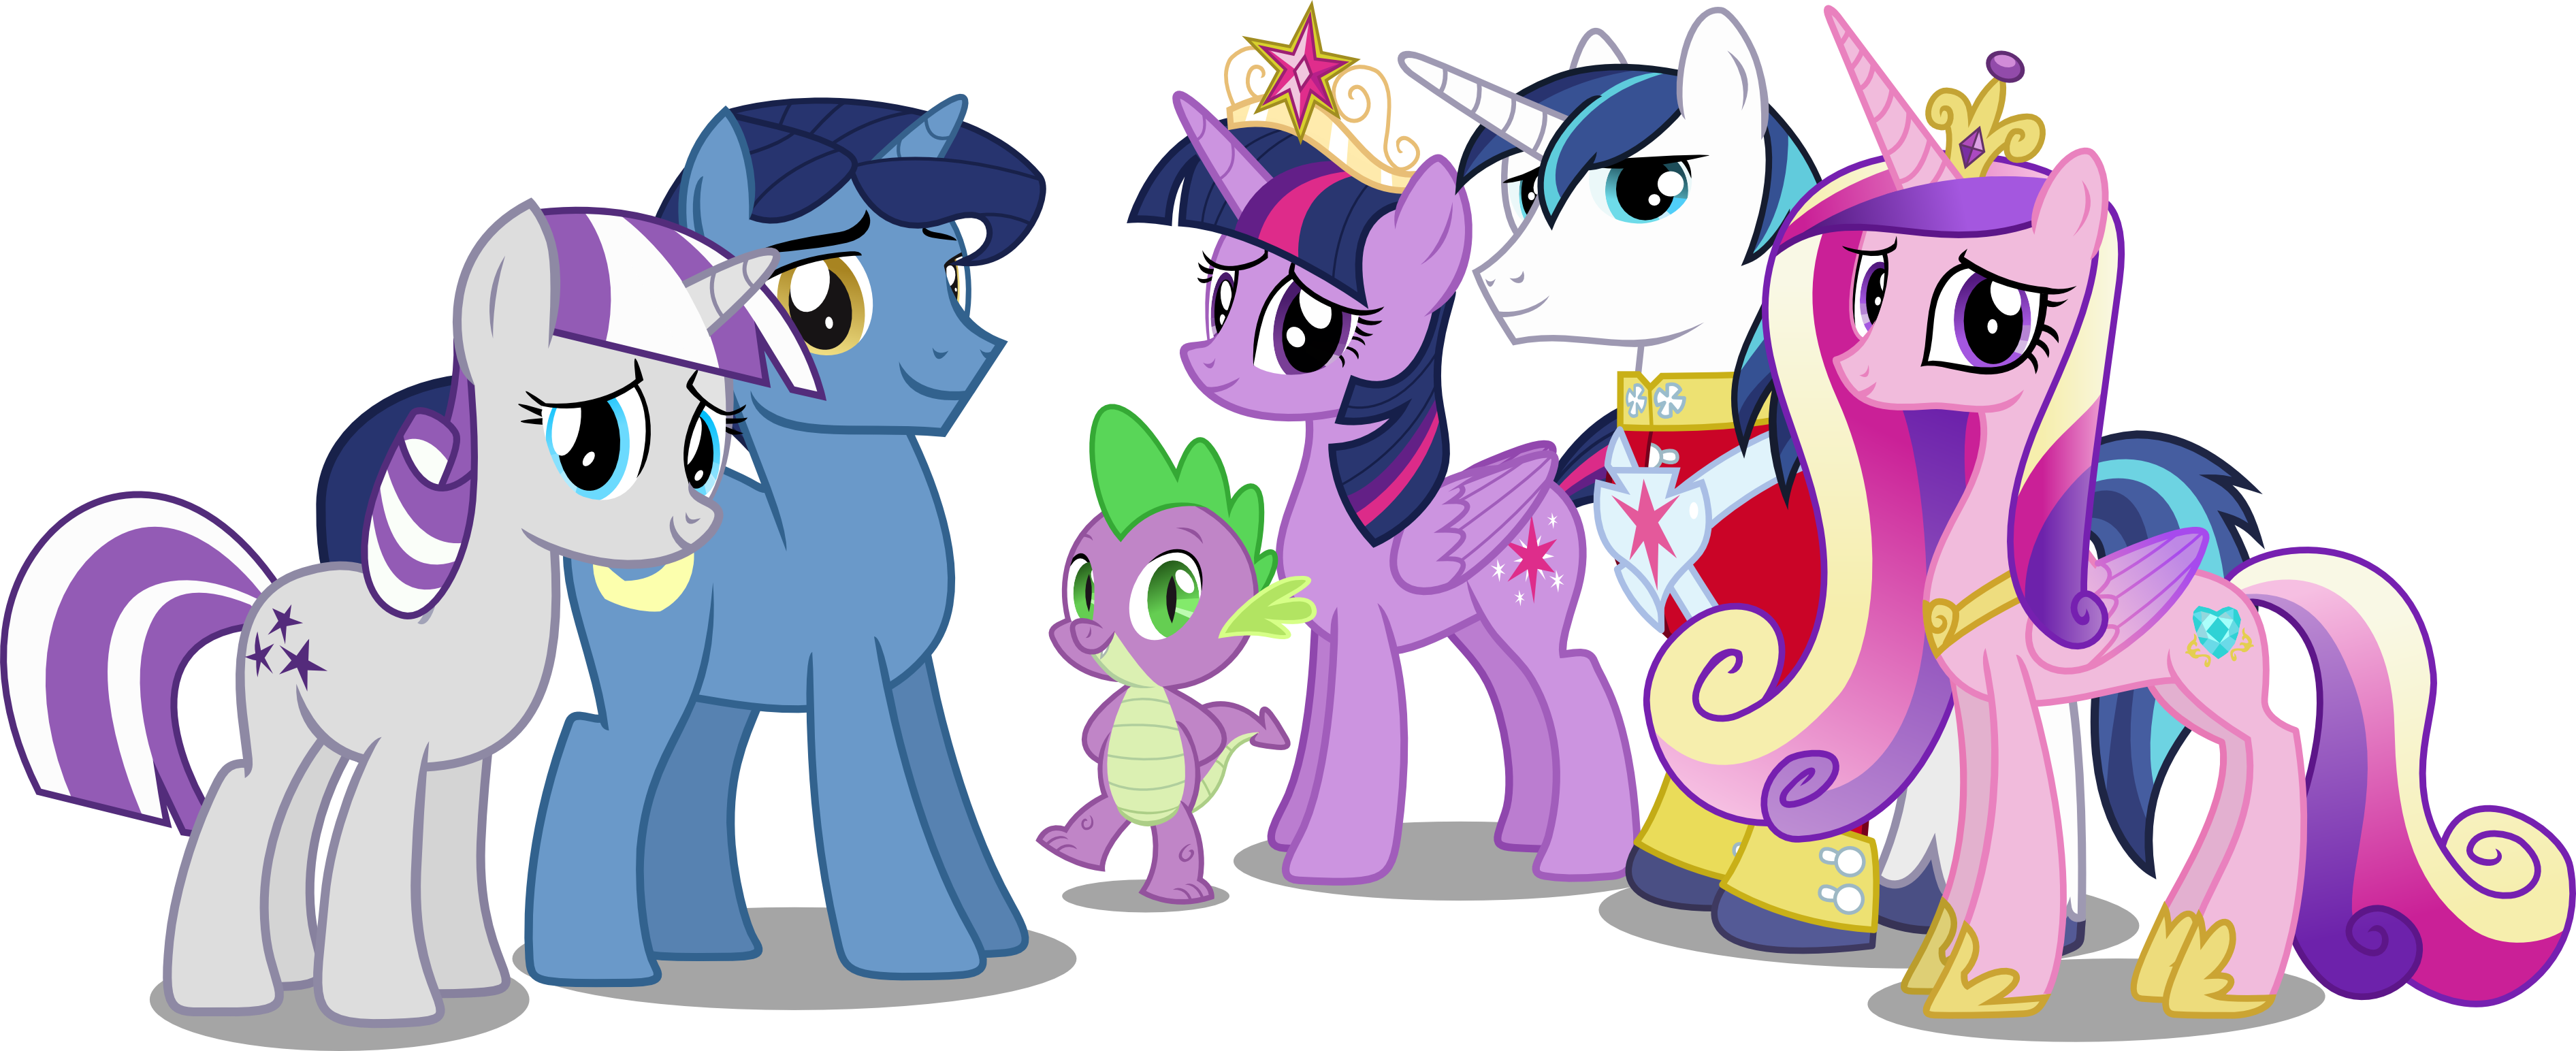 Image result for mlp twilight sparkle